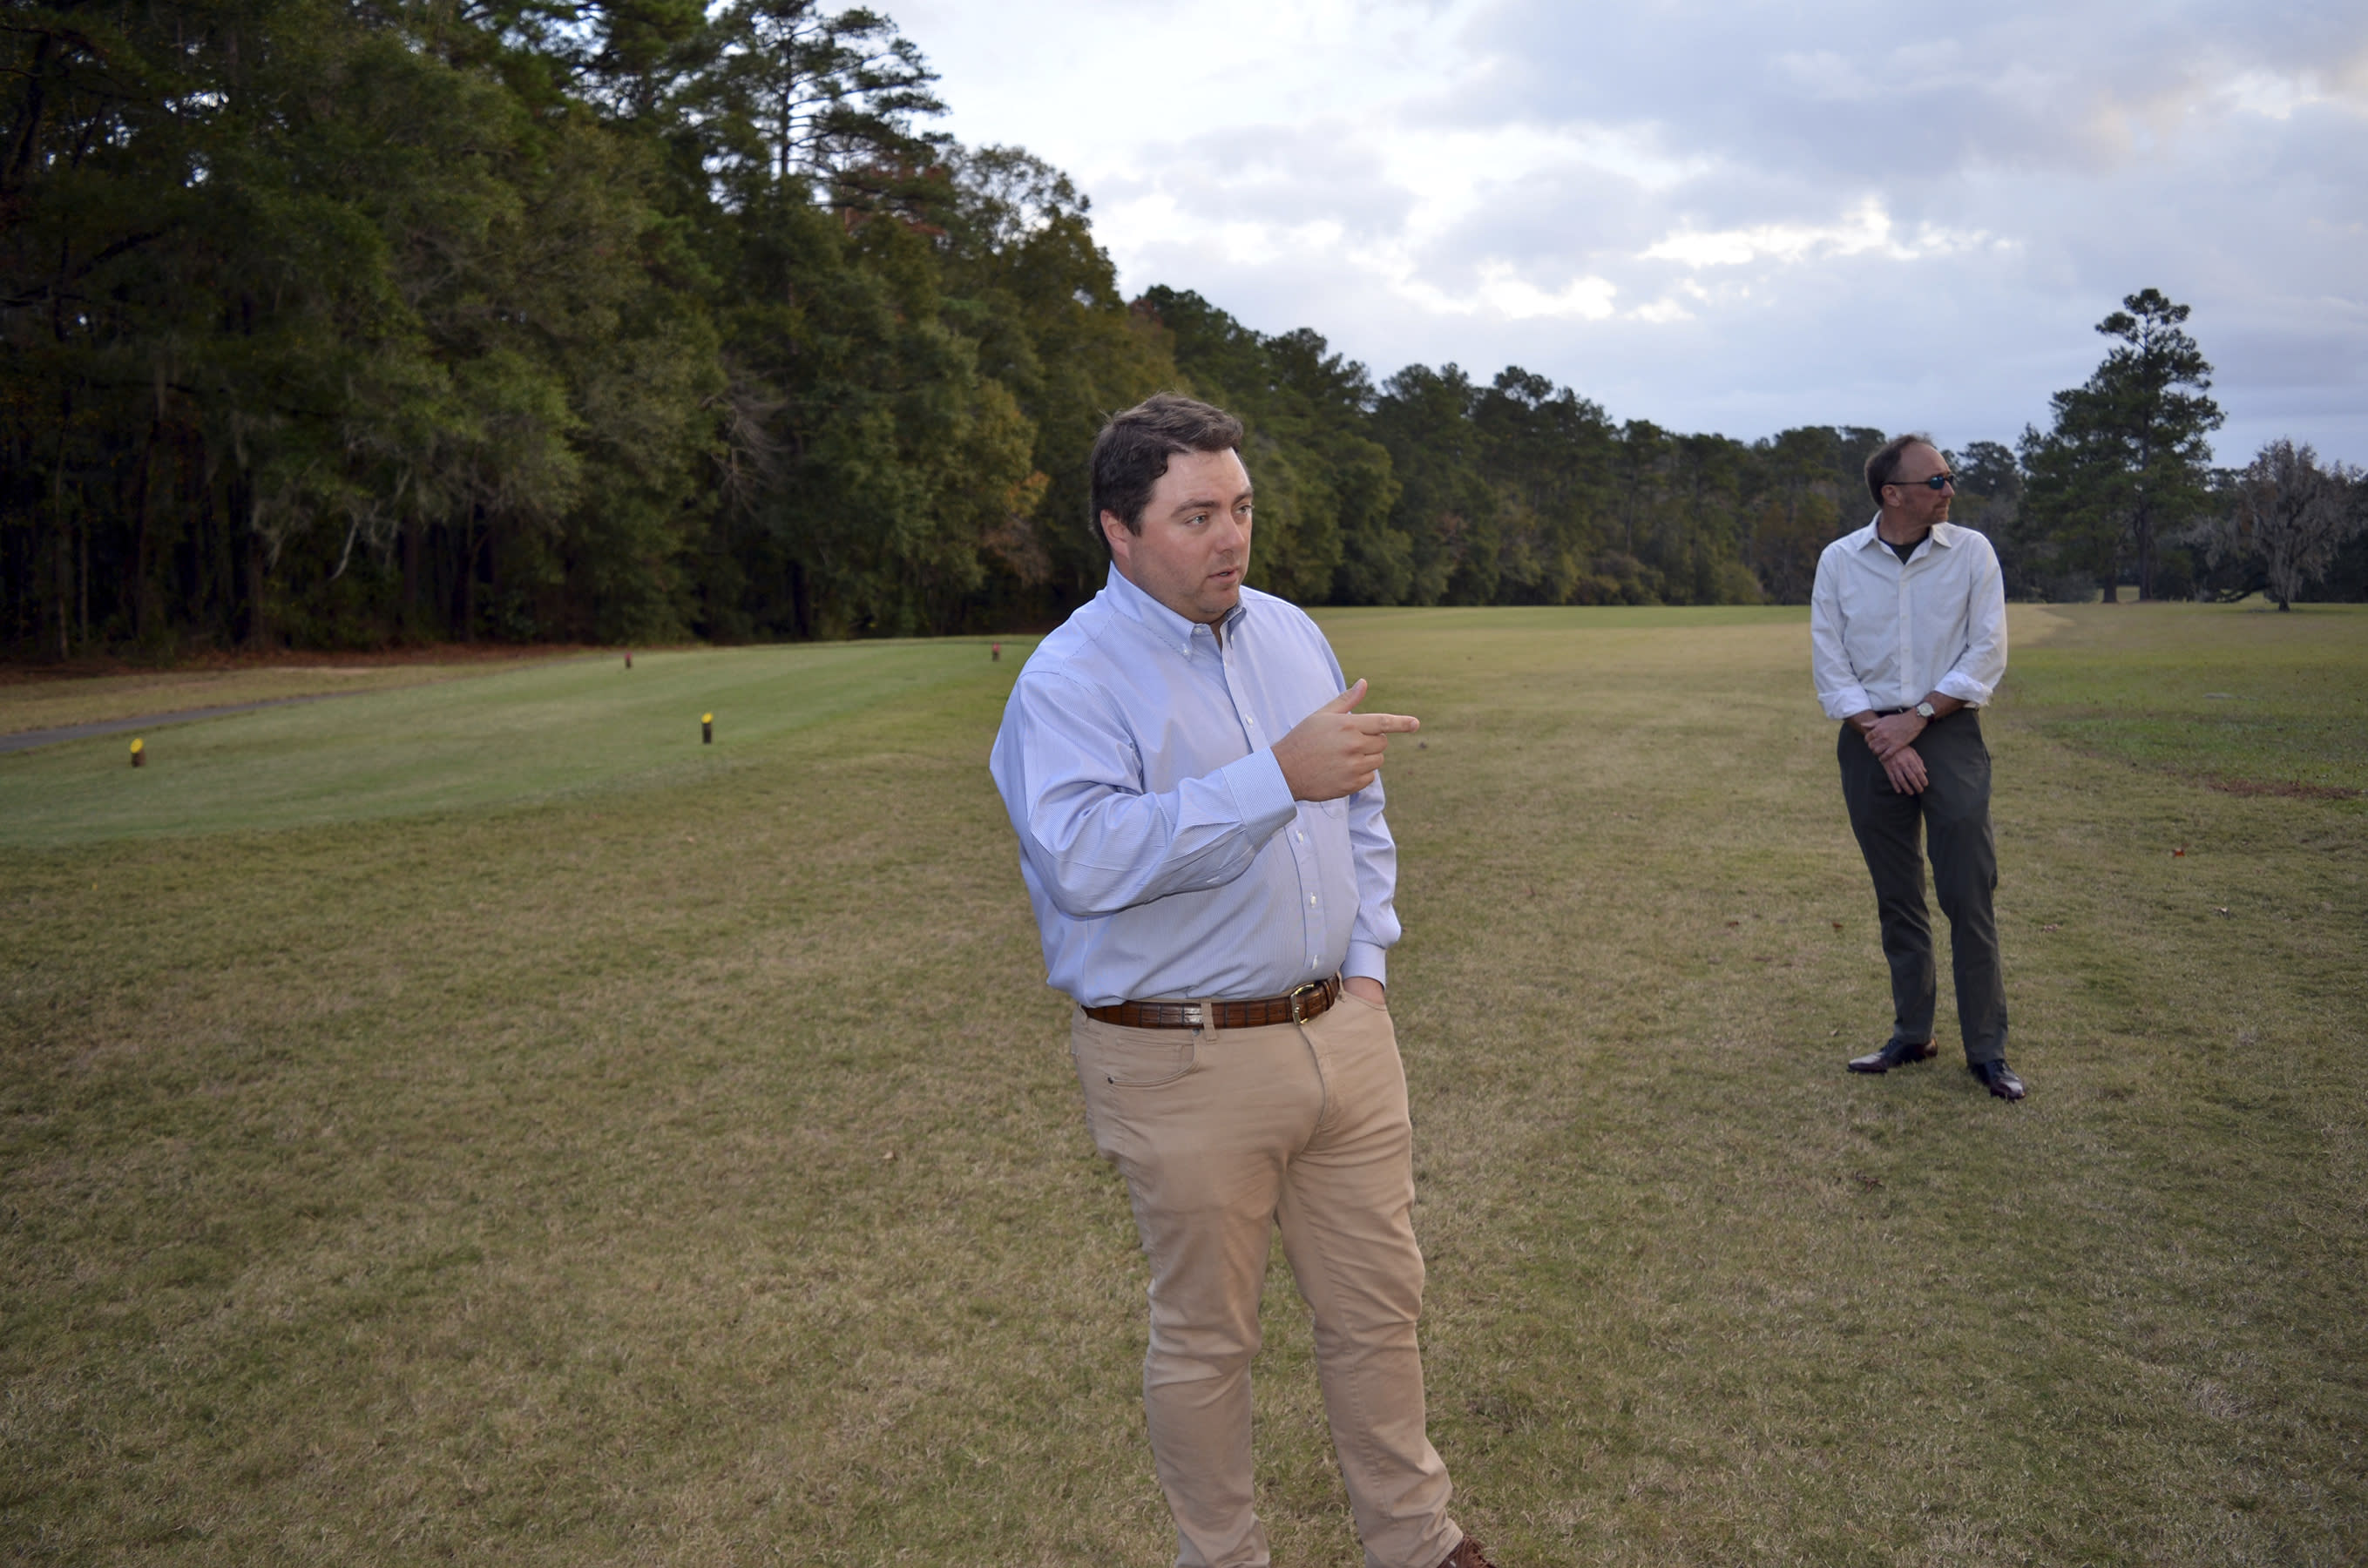 Jay Revell, left, who serves as the historian for the Capital City Country Club, visits the 7th hole of the country club on Dec. 16, 2019, with Jeffrey Shanks, right, an archaeologist with the National Park Service in Tallahassee, Fla. . Revell says the country club's board is considering how to memorialize dozens of slaves buried in an unmarked cemetery near the 7th hole women's tee. The golf course is located on land that was once one a former plantation. (AP Photo/Bobby Caina Calvan)